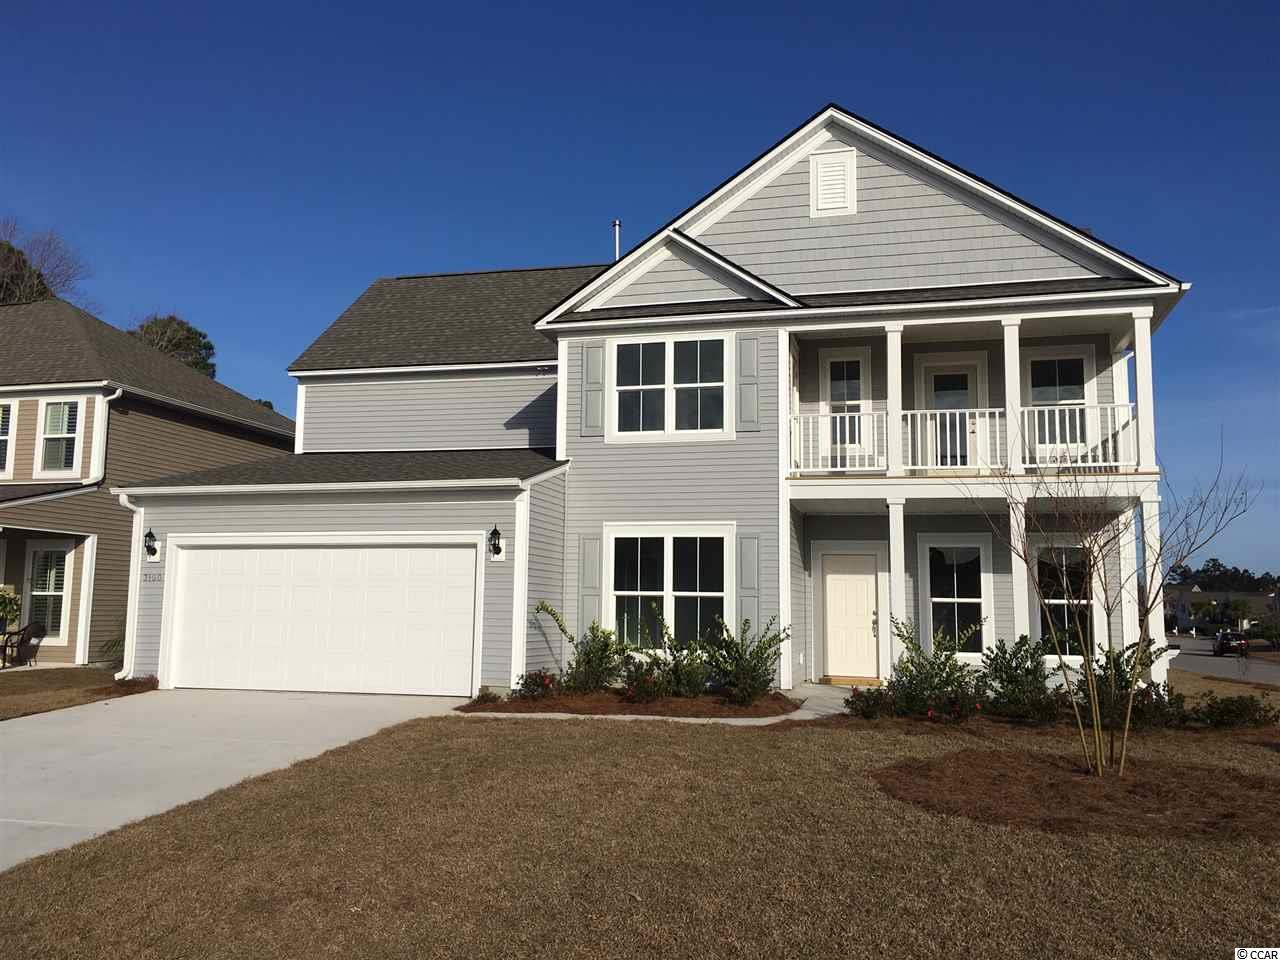 3100 Byrom Rd., Carolina Forest, South Carolina